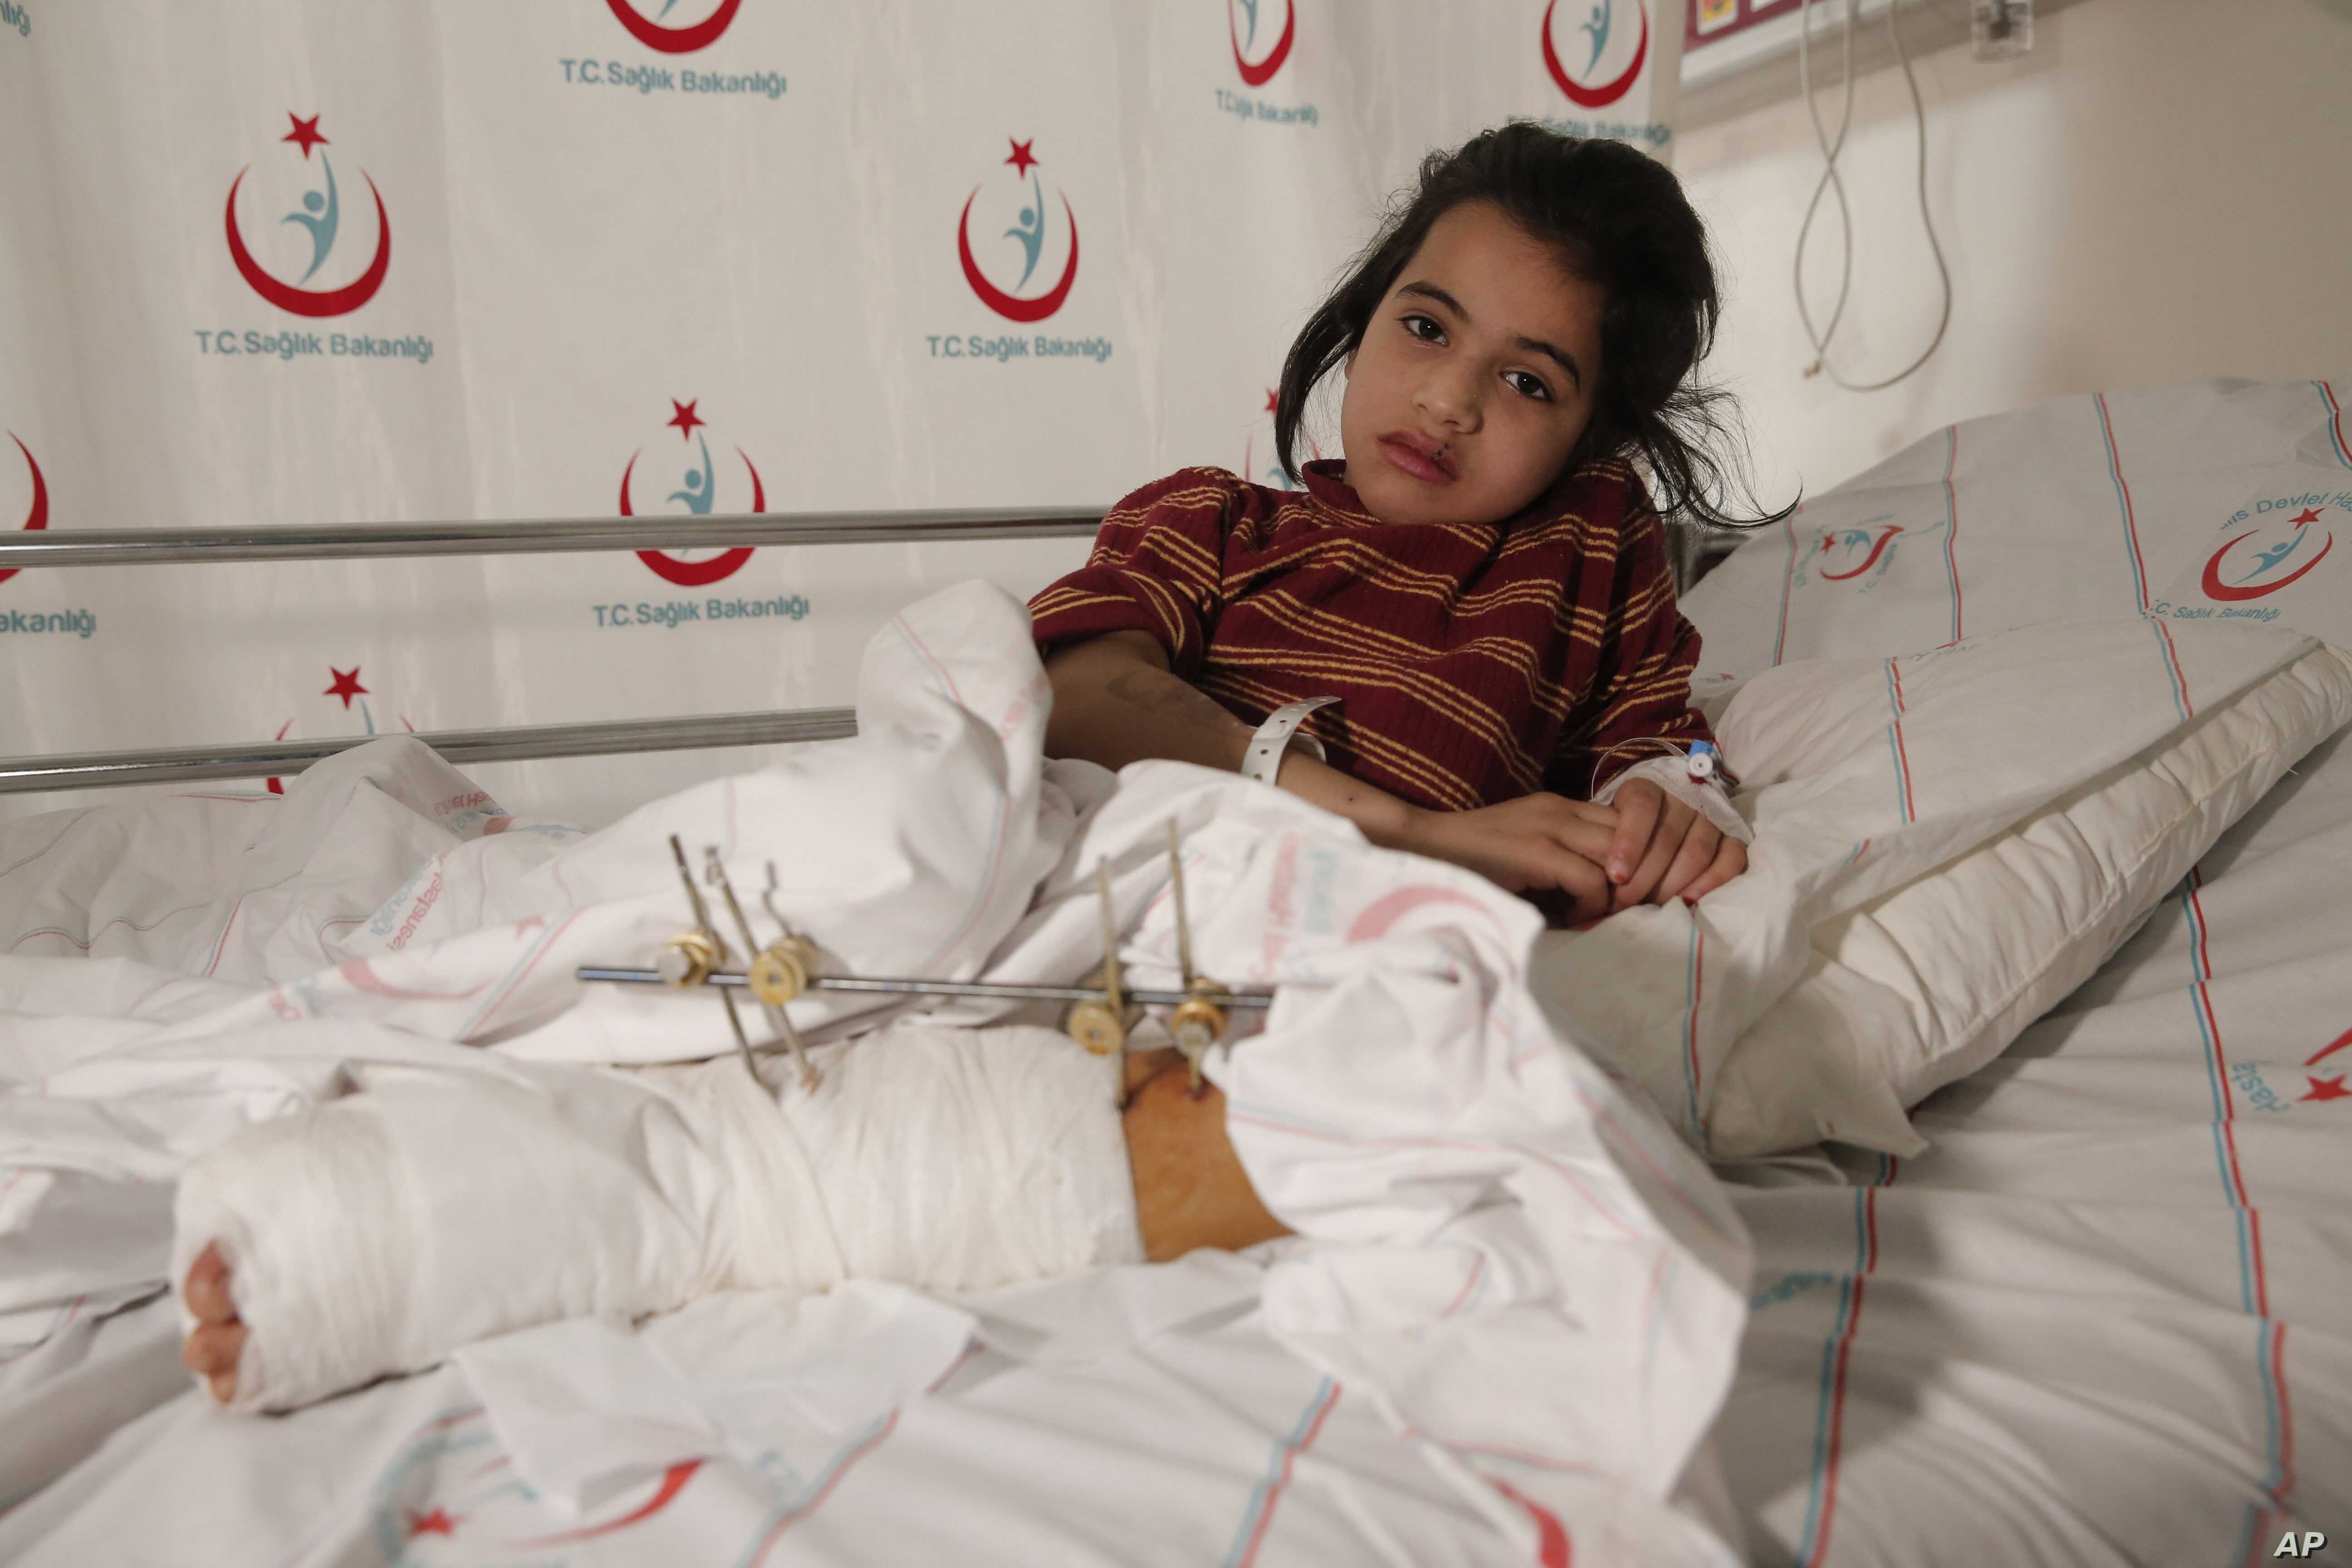 Syrian Aya Sharqawi, 6, wounded in an airstrike 10 days ago in her hometown of Tel Rifaat, Syria, lays on her bed at a hospital in Kilis, Turkey, Feb. 9, 2016.